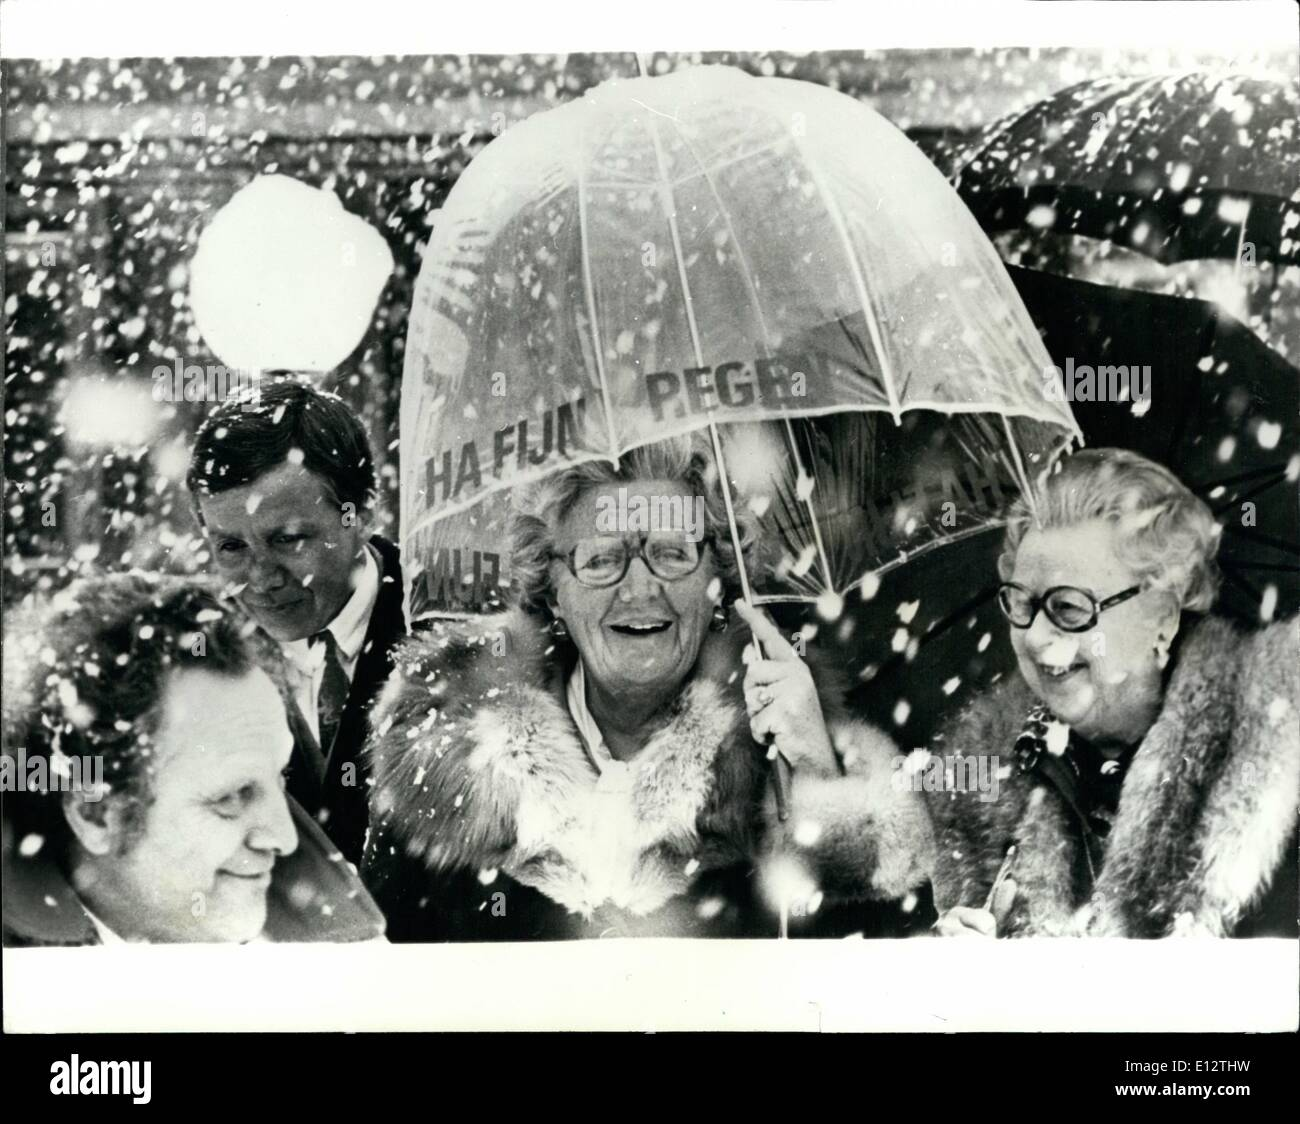 Feb. 24, 2012 - laughing in the snow.: Queen Juliana of the Netherlands opened a Psychiatric center at Oegstgeest, a village near the Haigh. Photo shows Queen Juliana seen walking in a snowstorm outside the center with ''Fine Rain' printed on the umbrella. - Stock Image